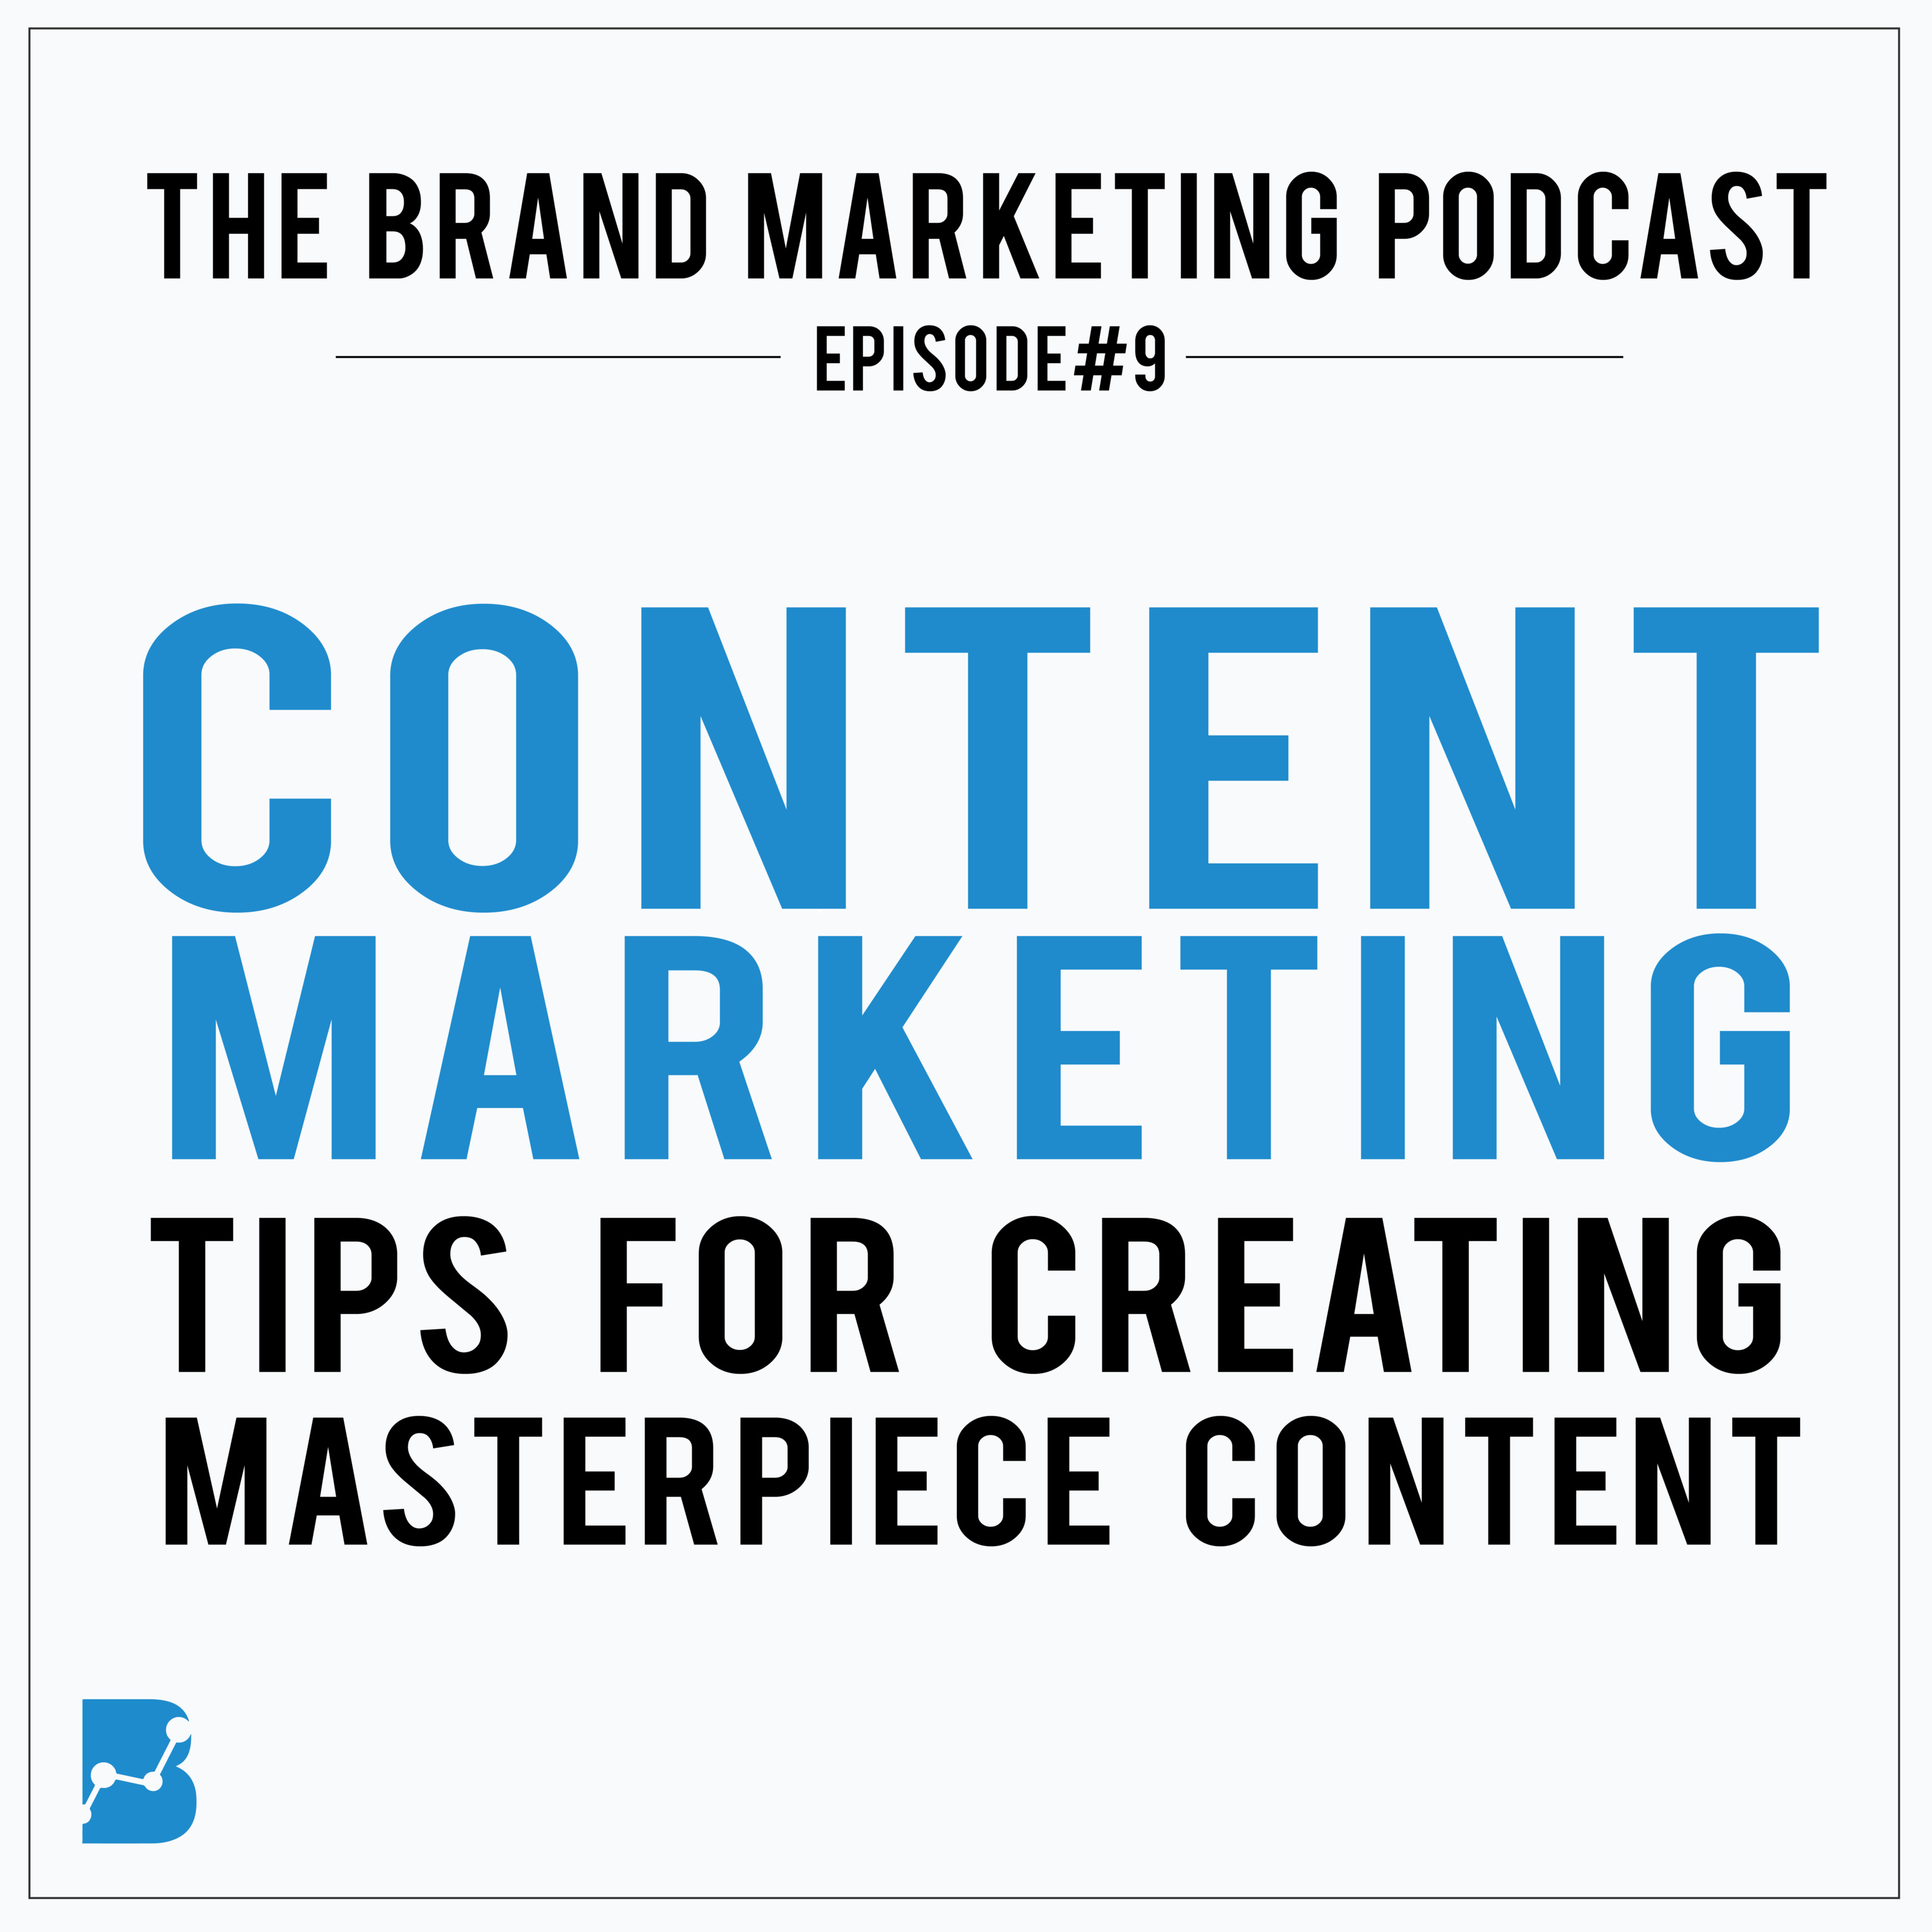 3 Content Marketing Tips for Creating Masterpiece Content